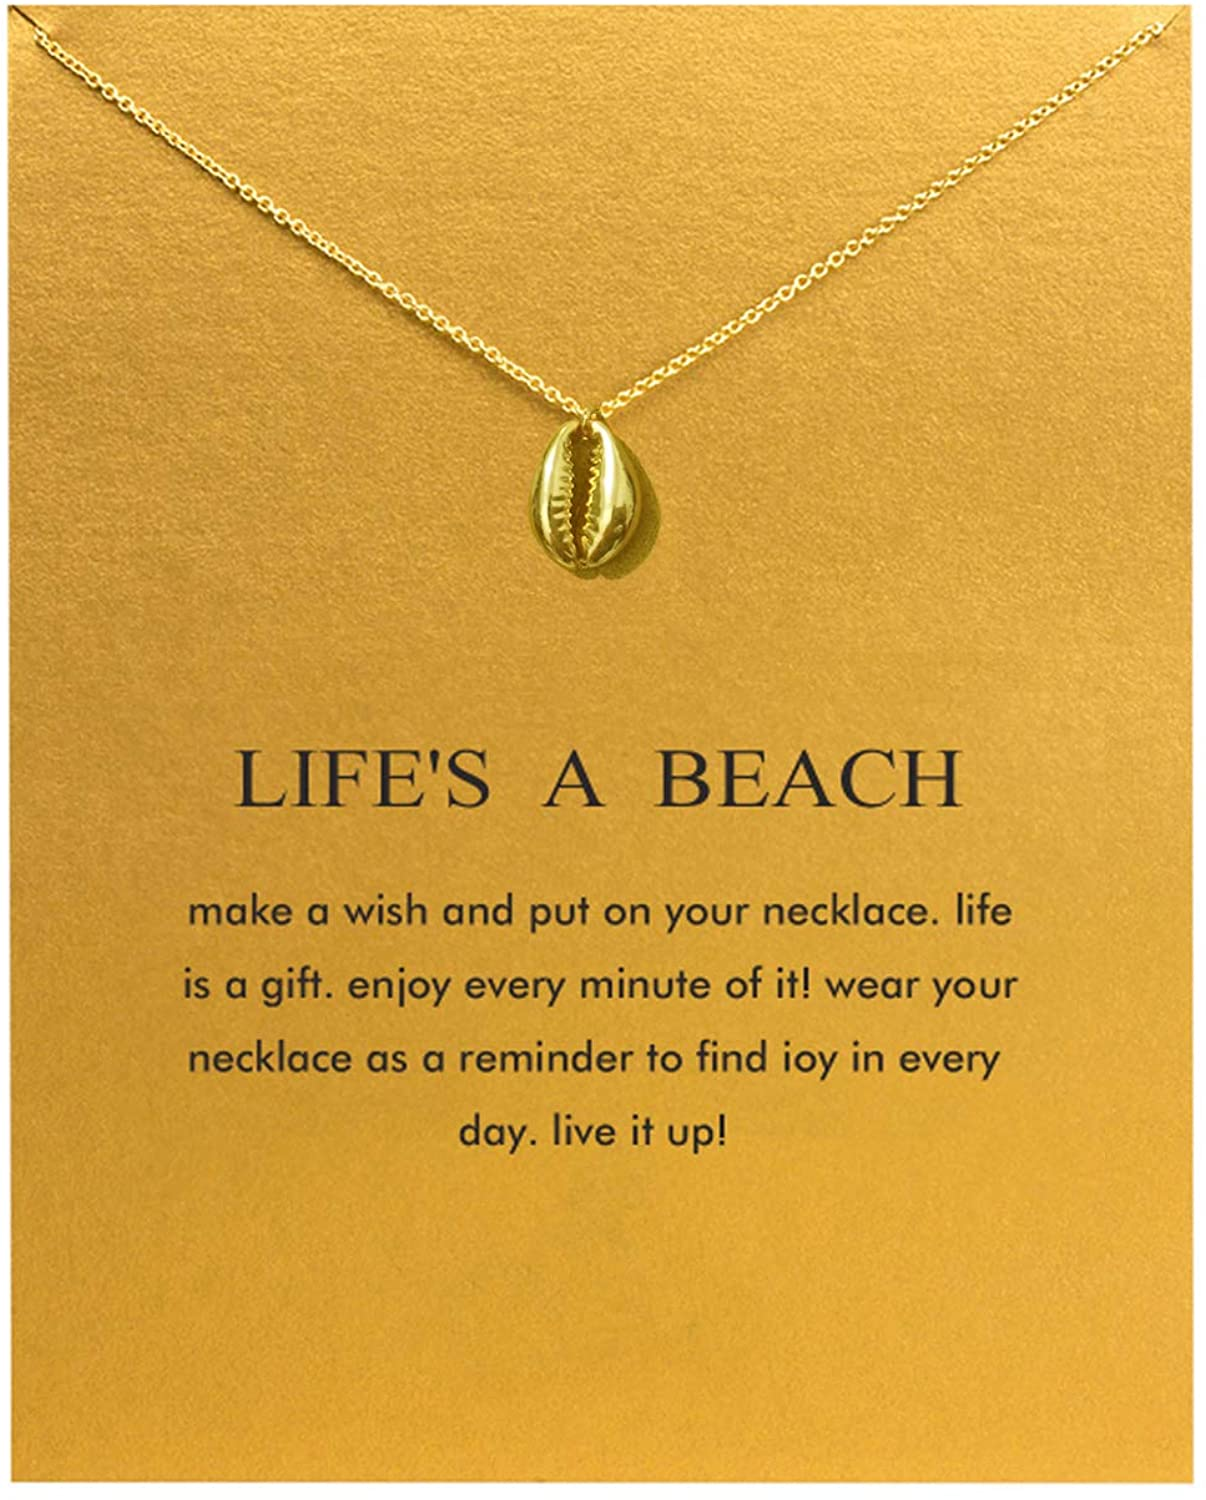 Hundred River Friendship Anchor Compass Necklace Good Luck Elephant Pendant Chain Necklace with Message Card